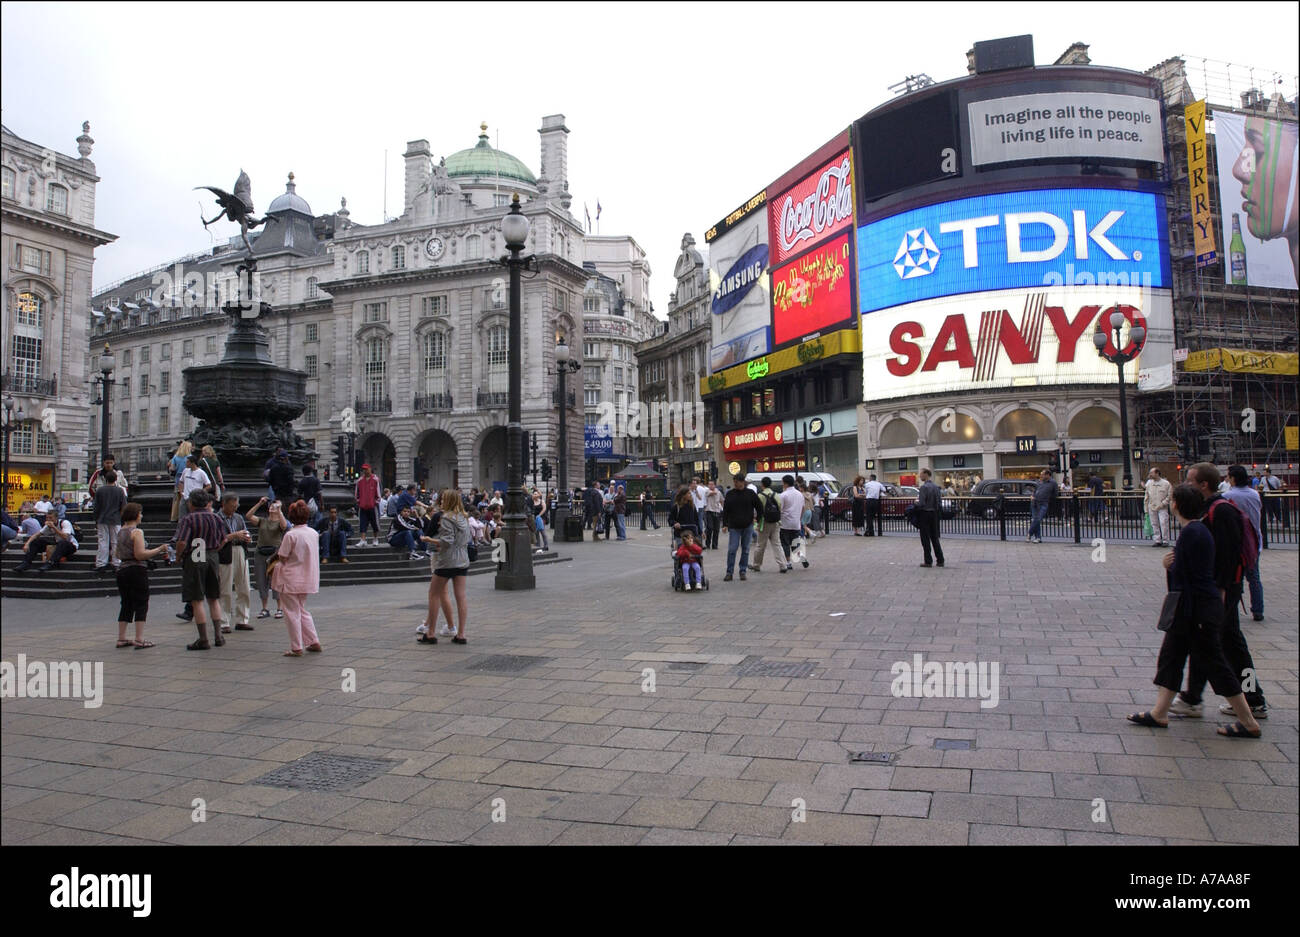 Picadilly circus with branding boards london - Stock Image